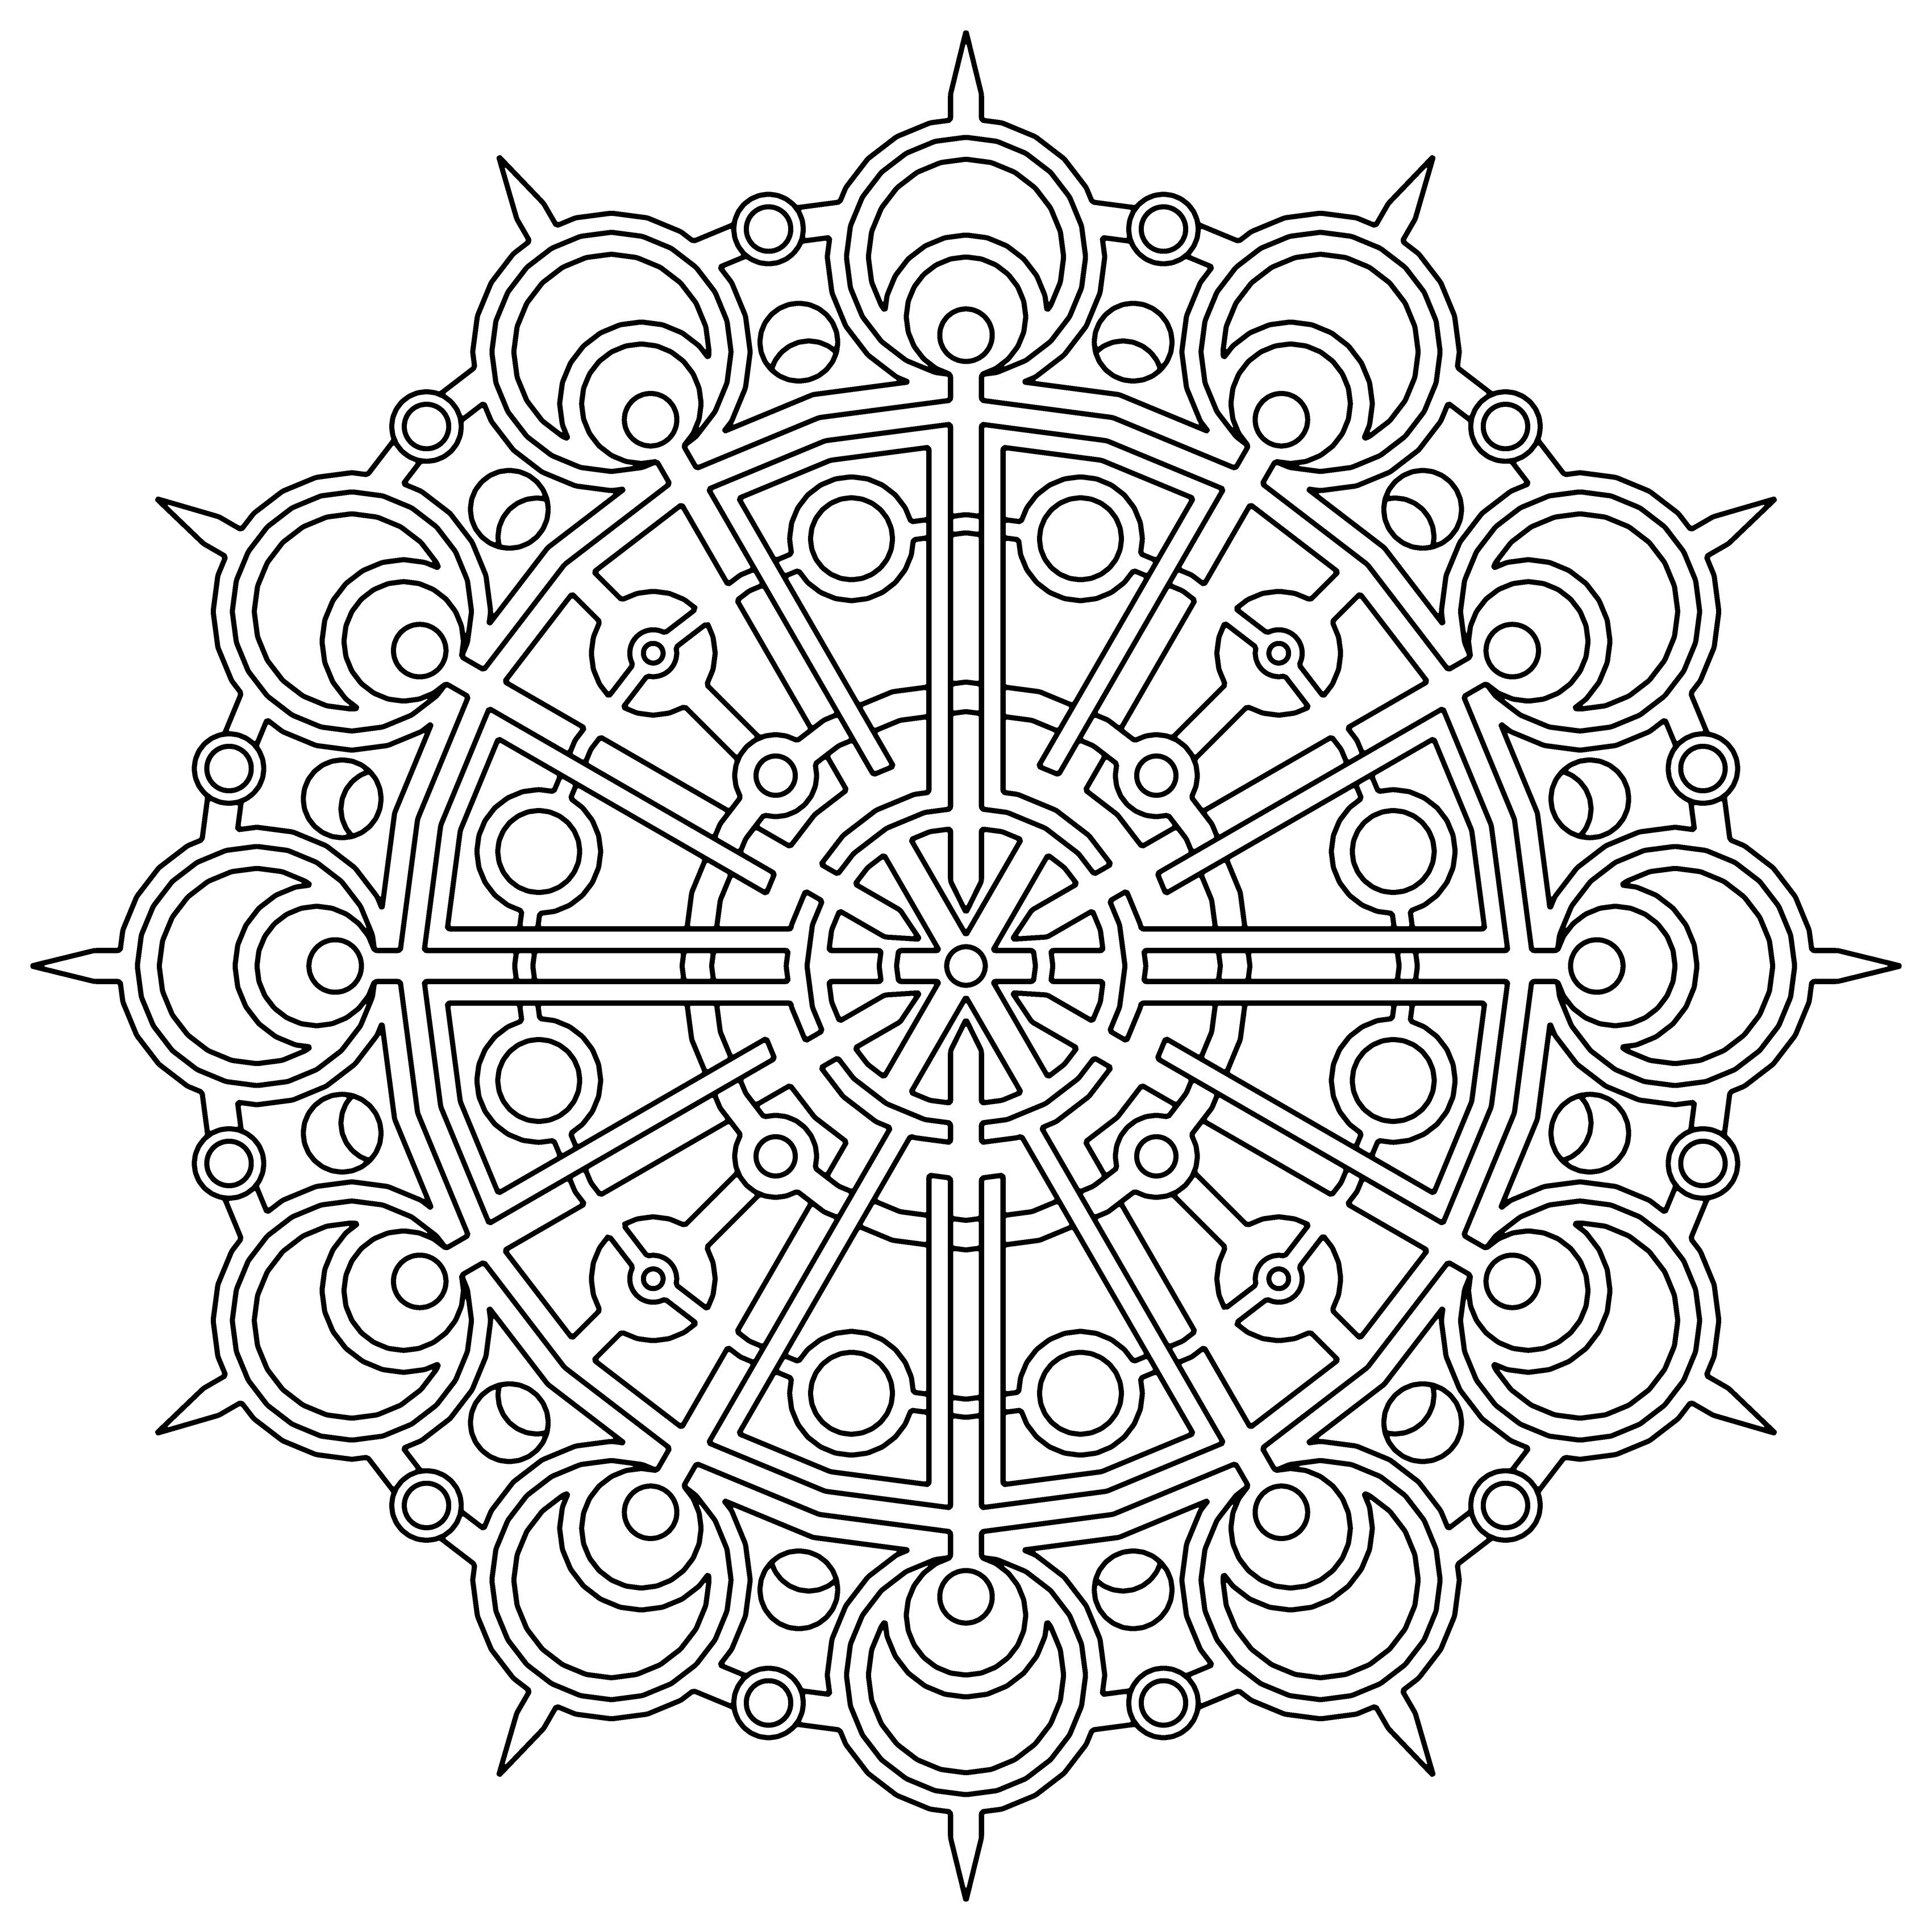 coloring sheets designs 17 free design shapes images free vector shapes free designs coloring sheets